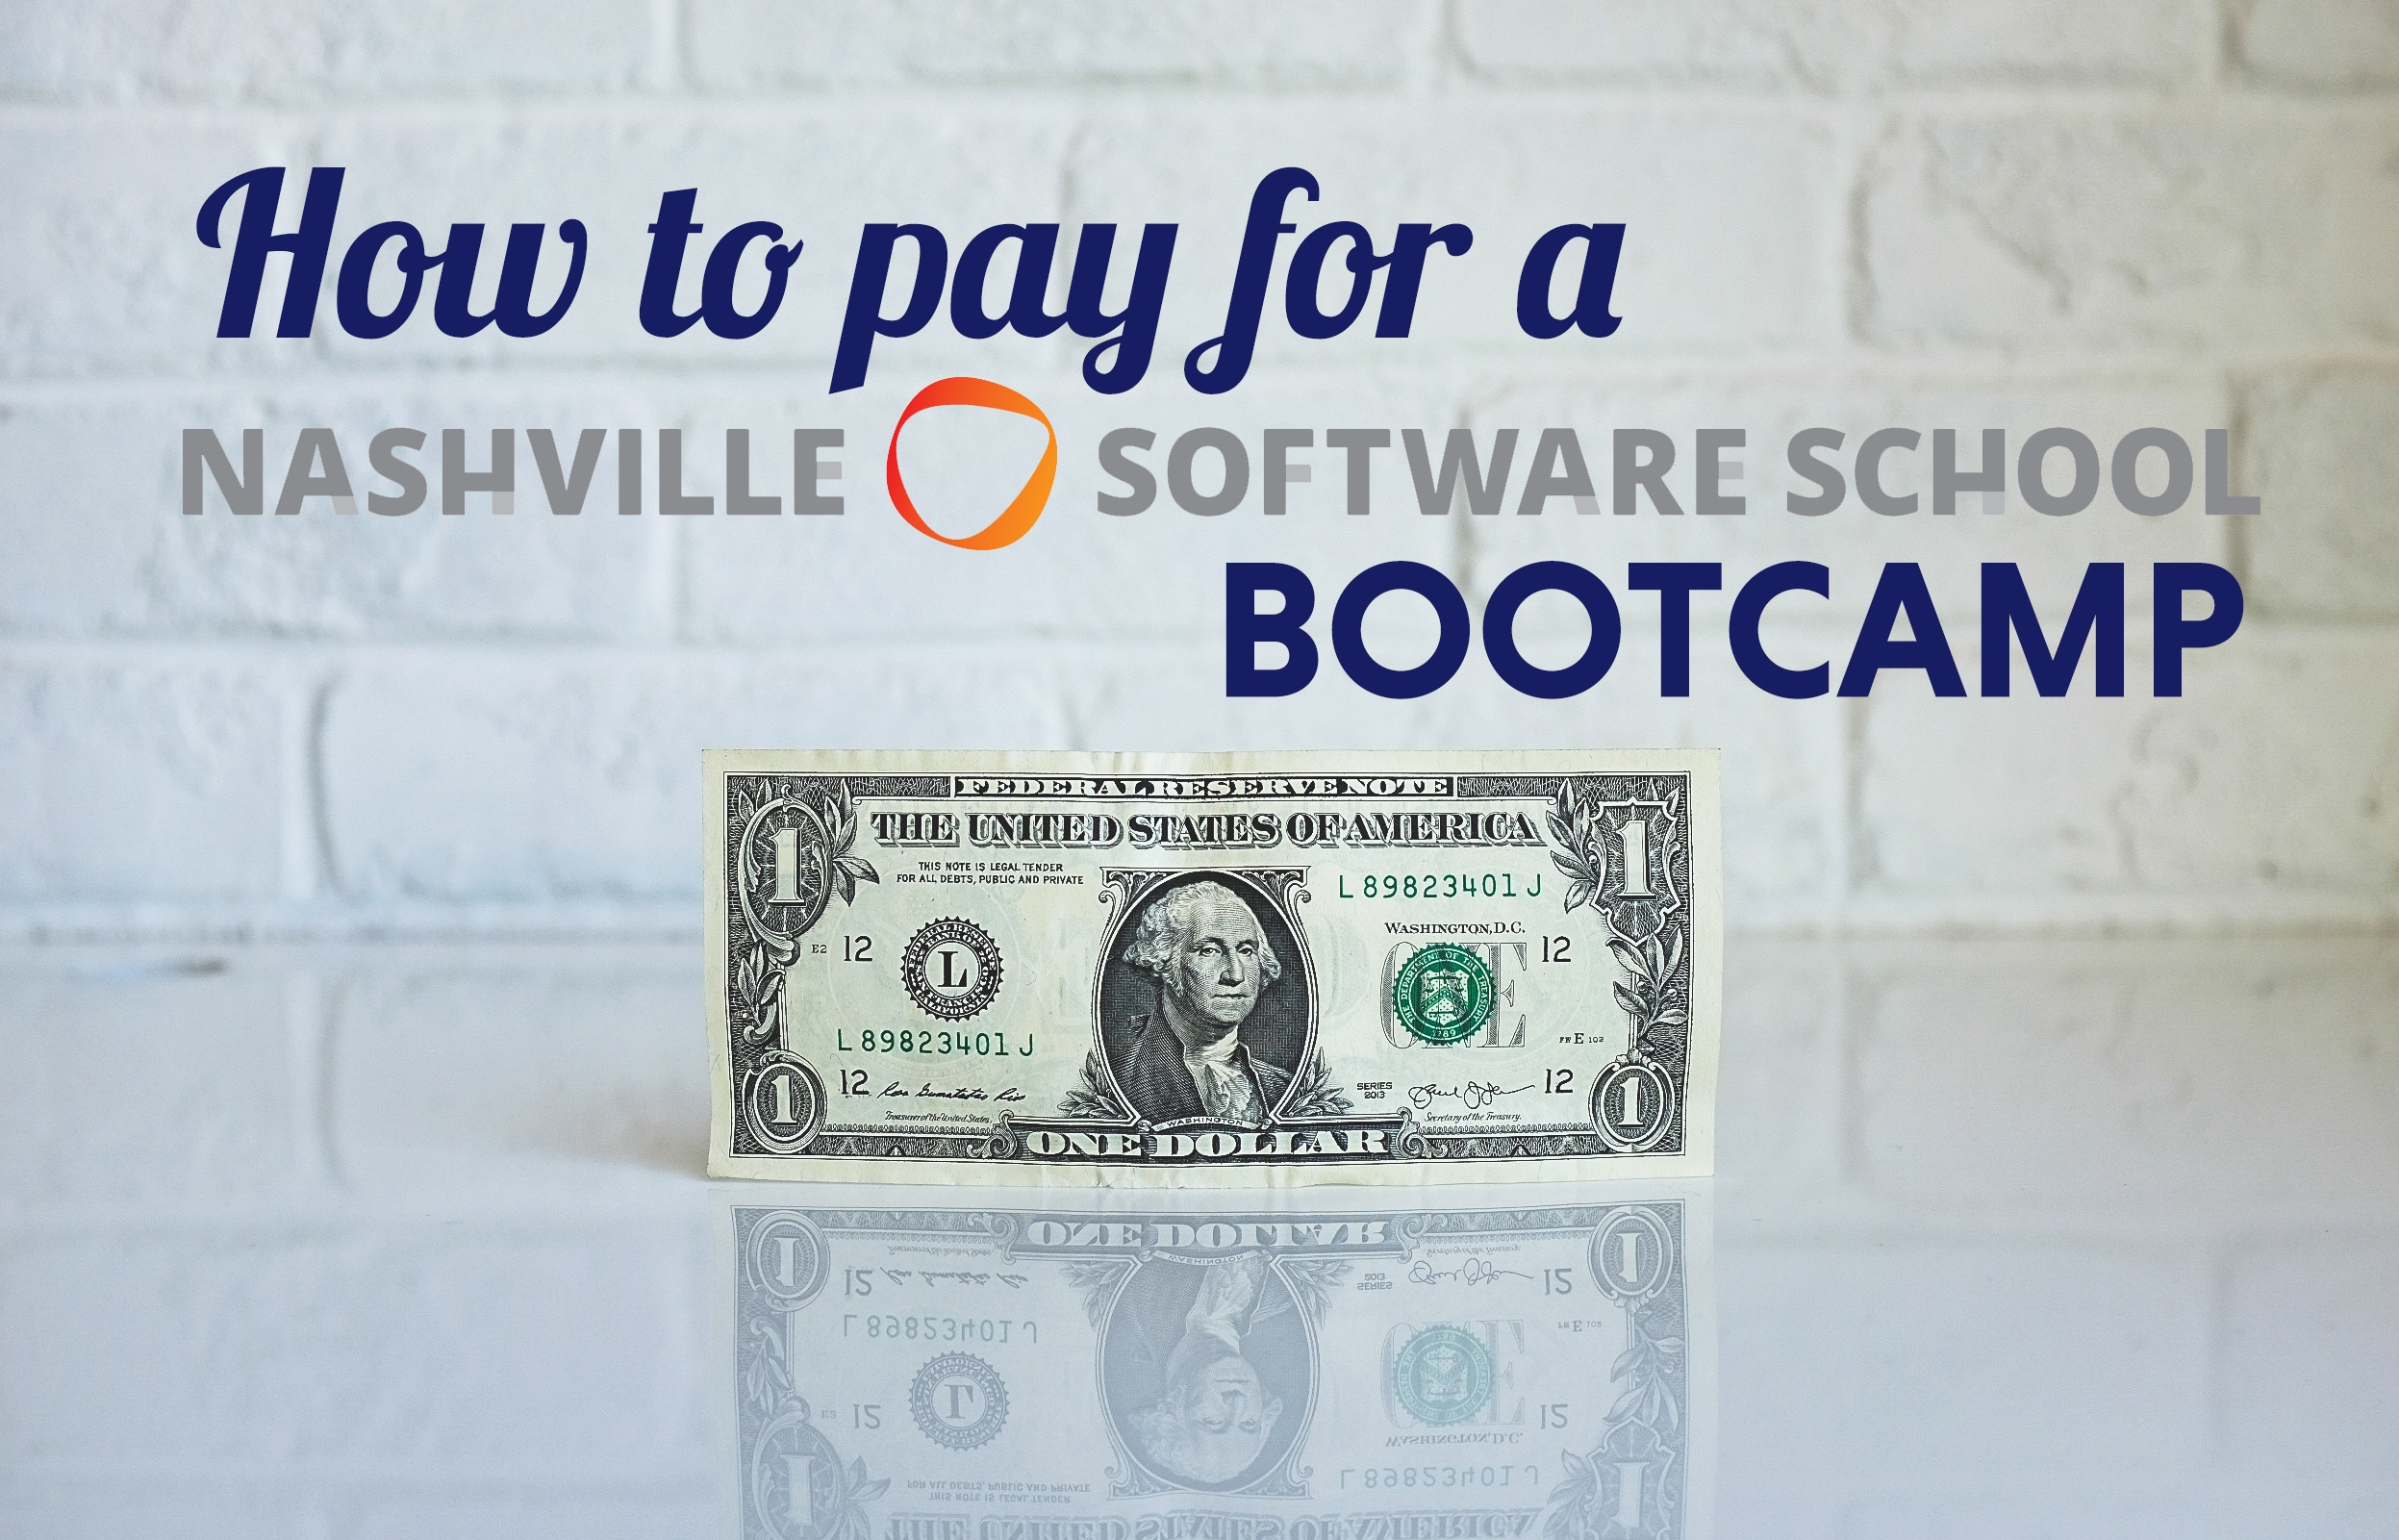 How To Pay For a Nashville Software School Bootcamp